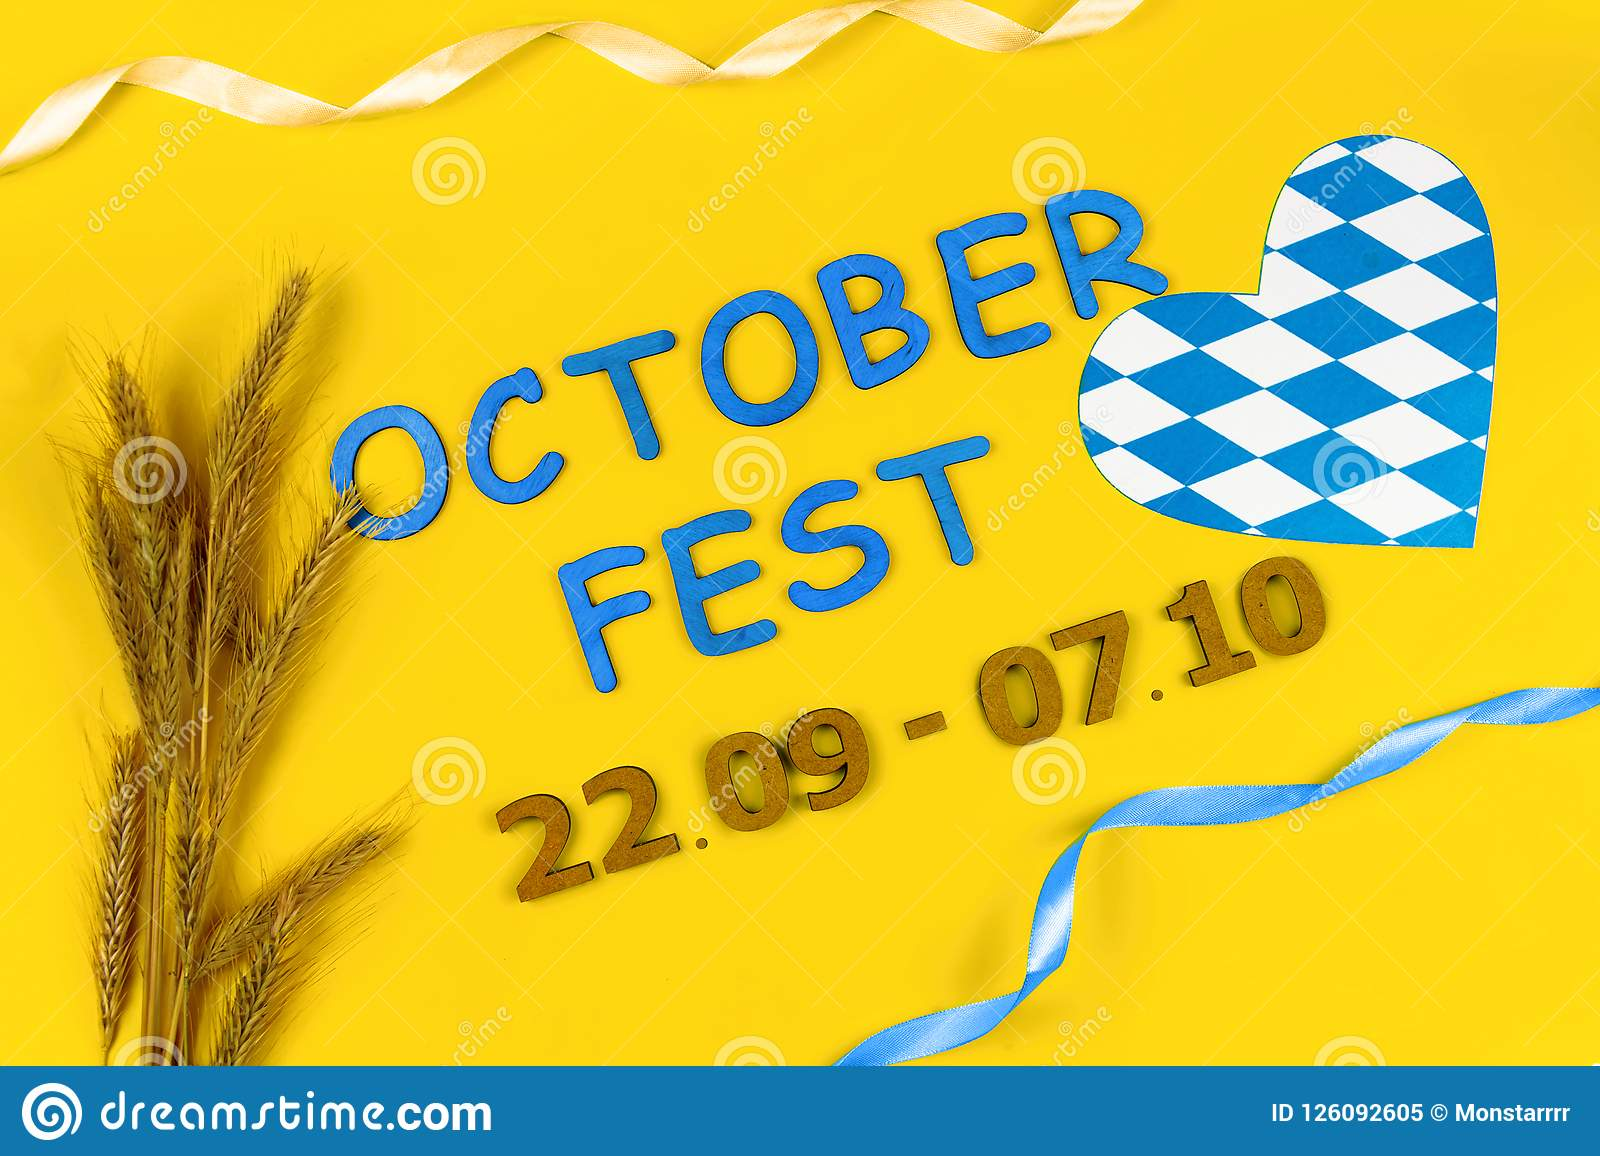 Ready for october beer festival in autumn october month in germany